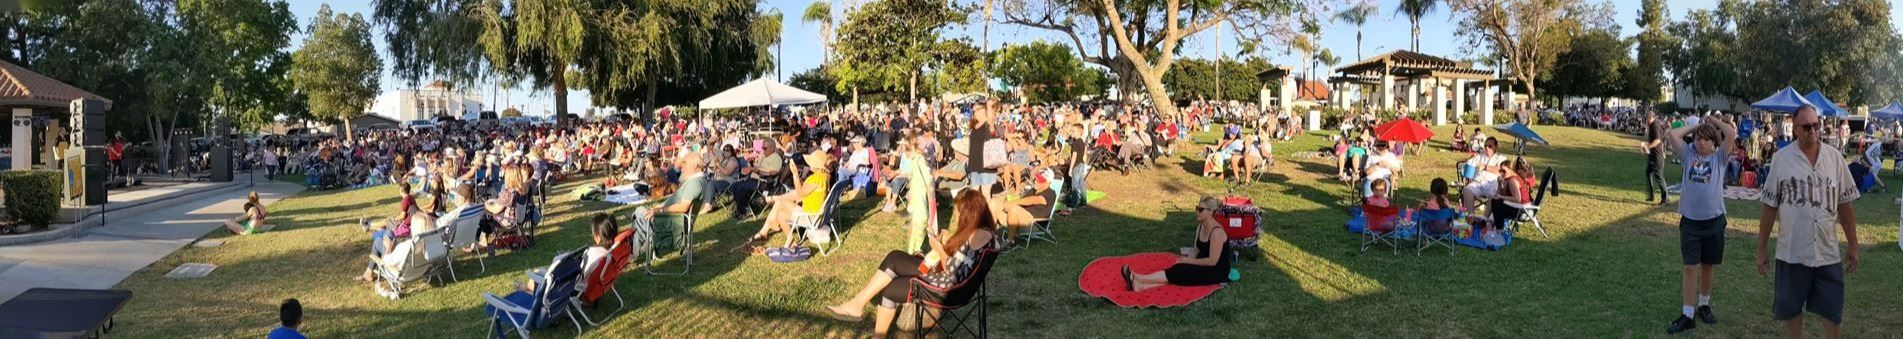 Concerts in the Park 2019 - Alley Cats Panoramic 2